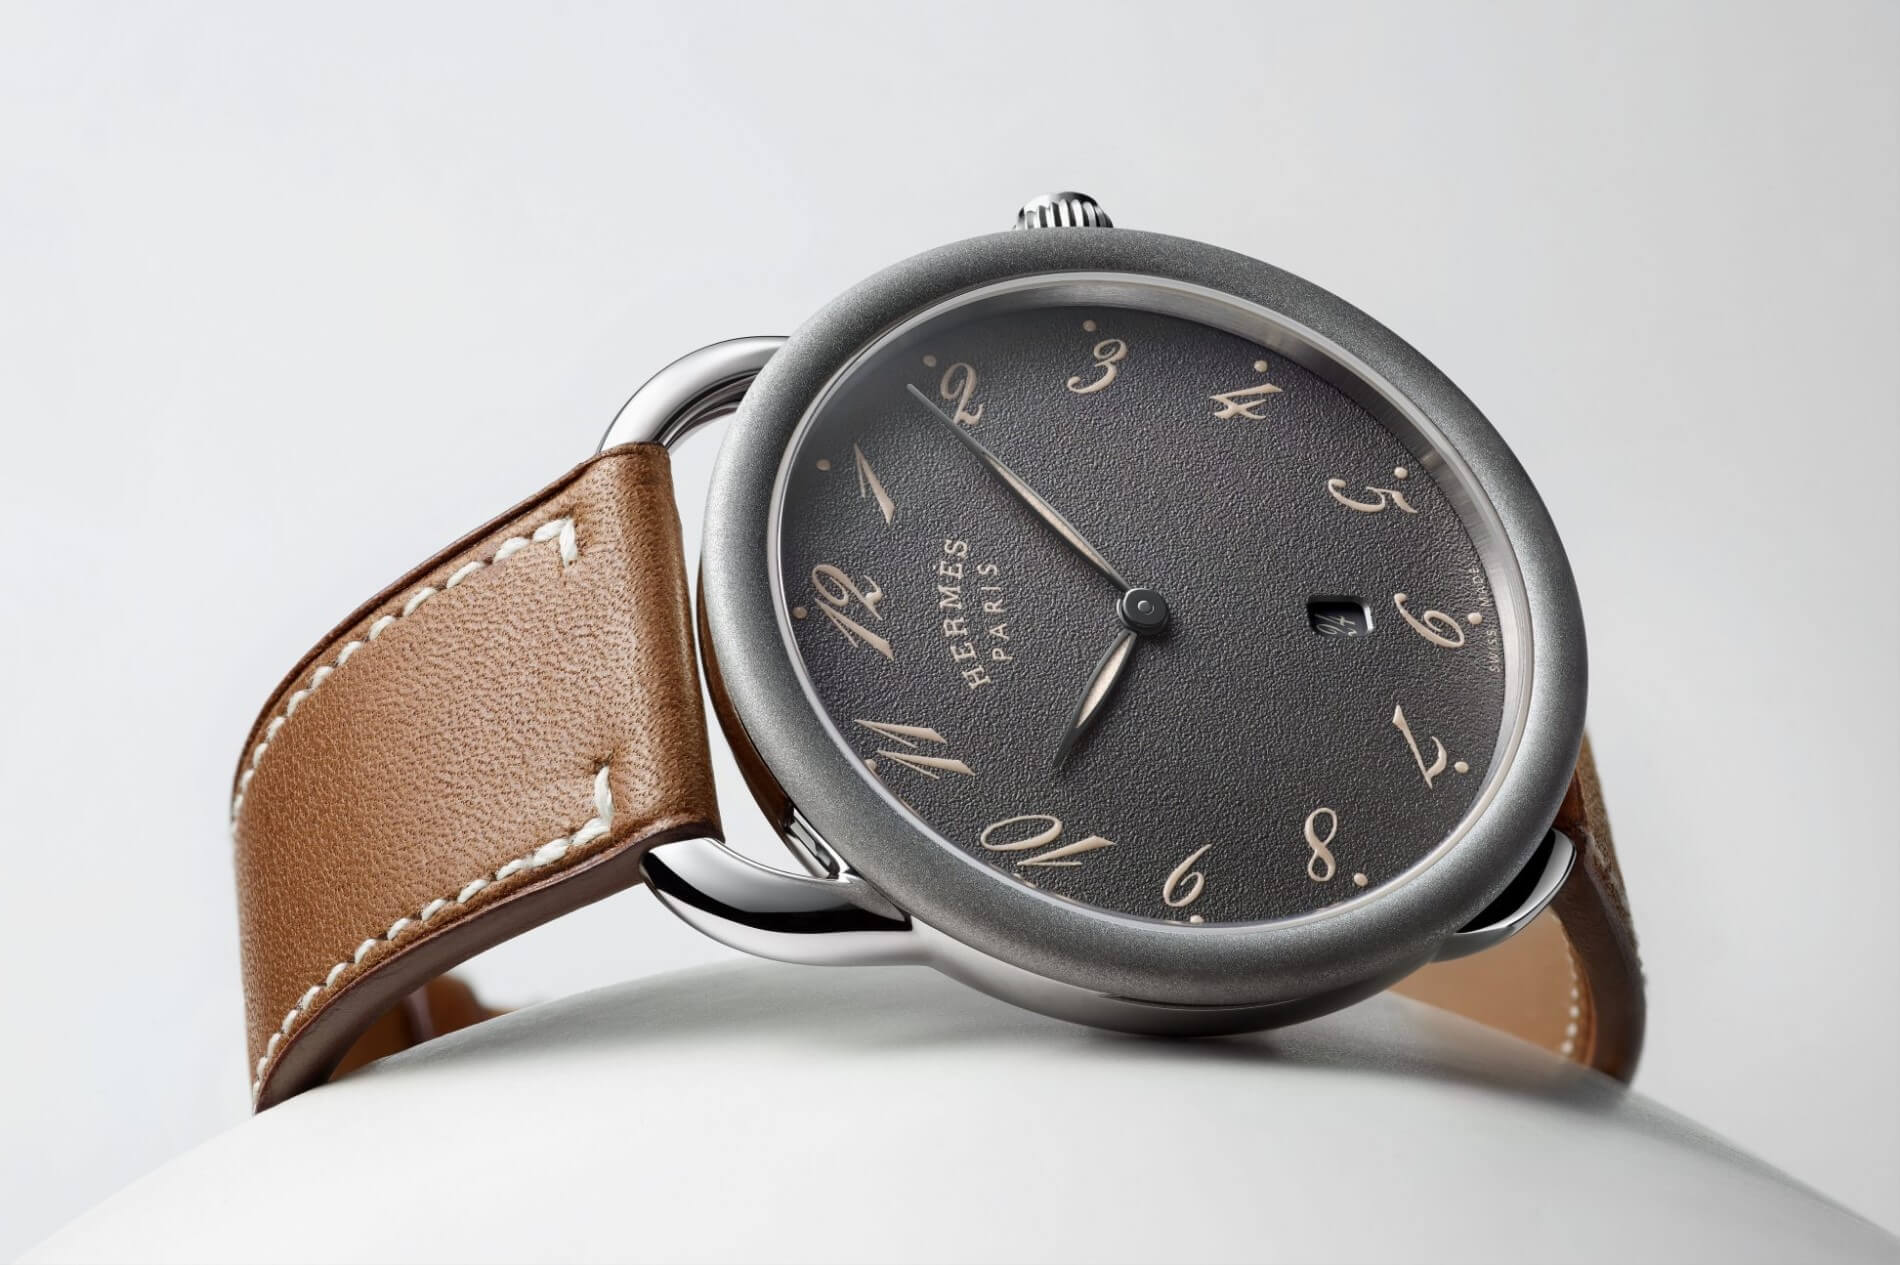 Hermes Arceau 78 Watch